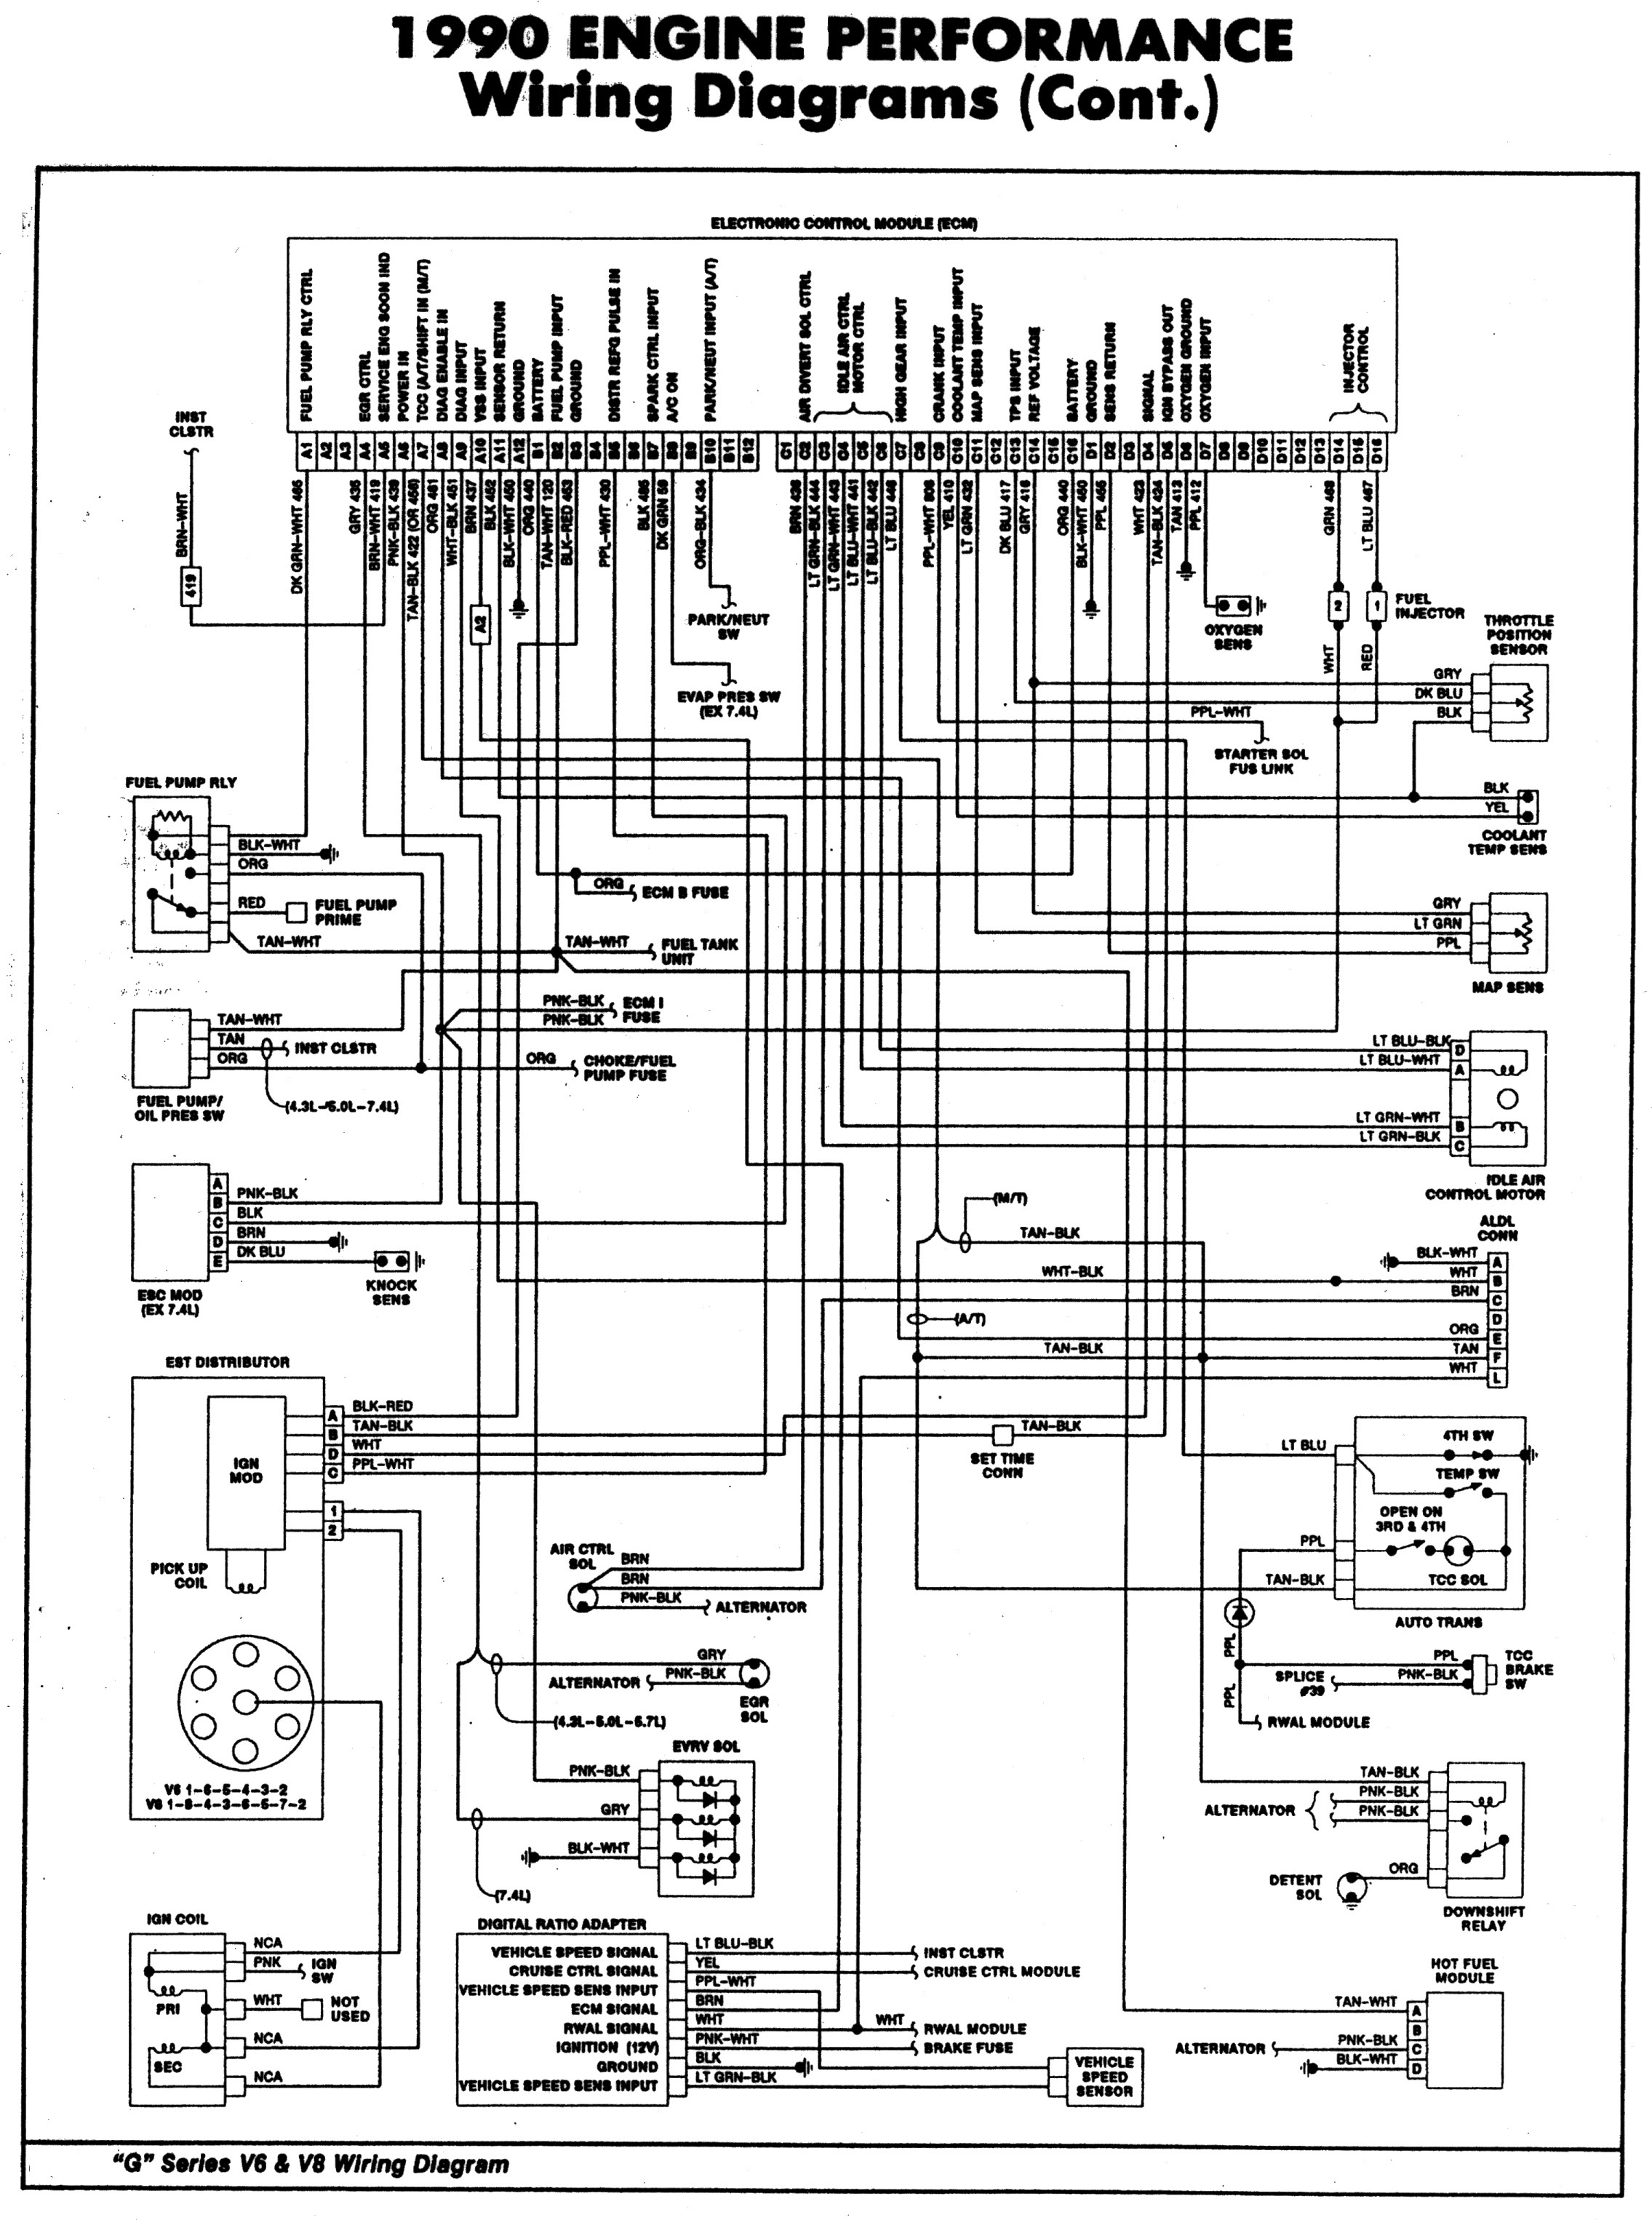 Chevy Tbi Fuel System Diagram - Wiring Diagram Write on 92 chevy steering, 92 chevy radiator, chevy 3 wire alternator diagram, 1995 chevy fuse box diagram, 92 chevy transmission, 92 chevy k1500, 92 chevy fuel pump, 92 chevy wiper motor, 92 chevy engine, 92 chevy carburetor, 92 chevy diesel wiring schematic, 92 chevy oil pump, chevy truck ignition diagram, 92 chevy radio, 92 chevy parts, 92 chevy horn, 92 chevy exhaust, 92 chevy silverado 1500, 92 chevy headlights, 92 chevy astro van,